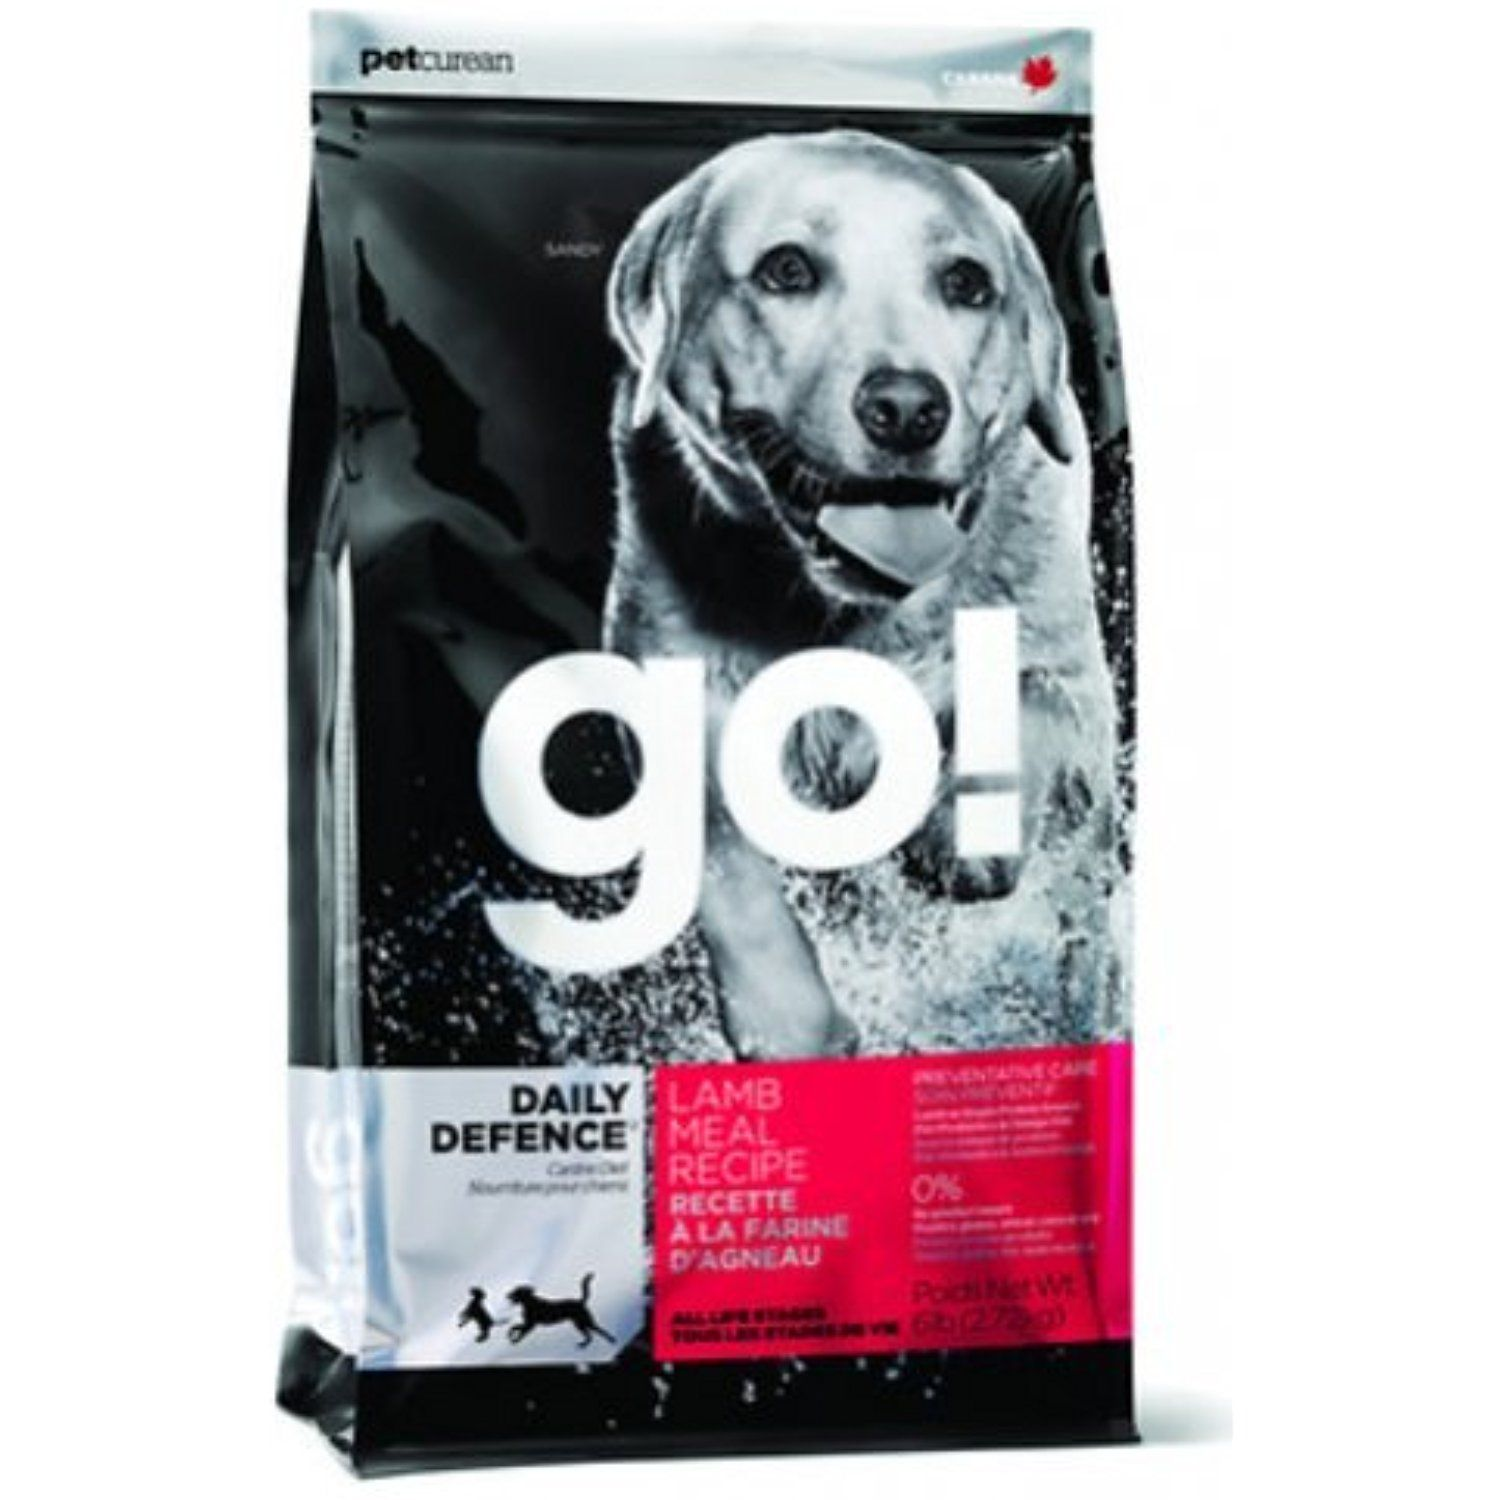 Go! DAILY DEFENCE Lamb Meal Recipe Dry Dog Food 25lb